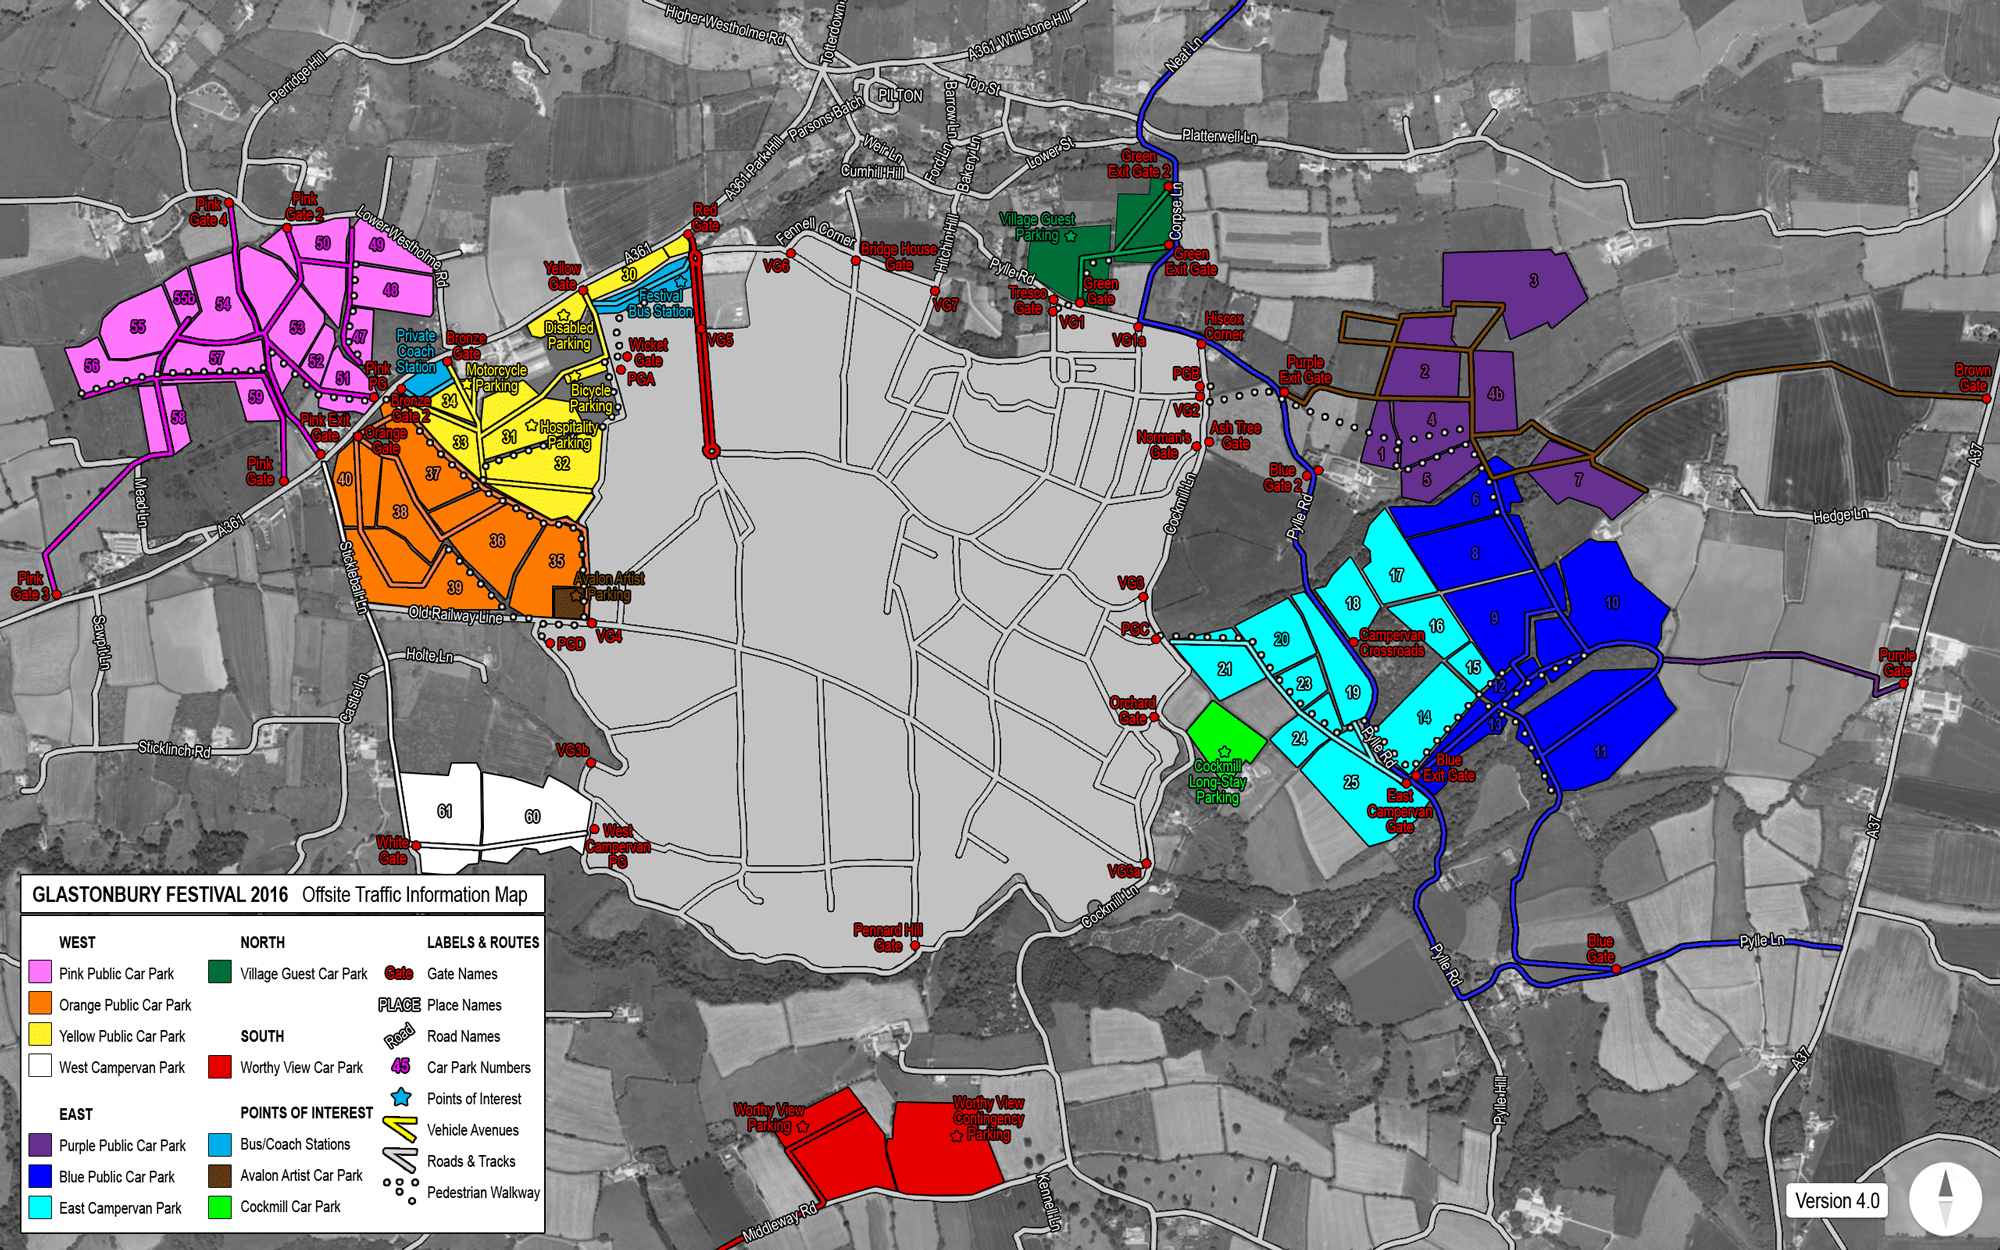 Carte des parkings du festival de Glastonbury